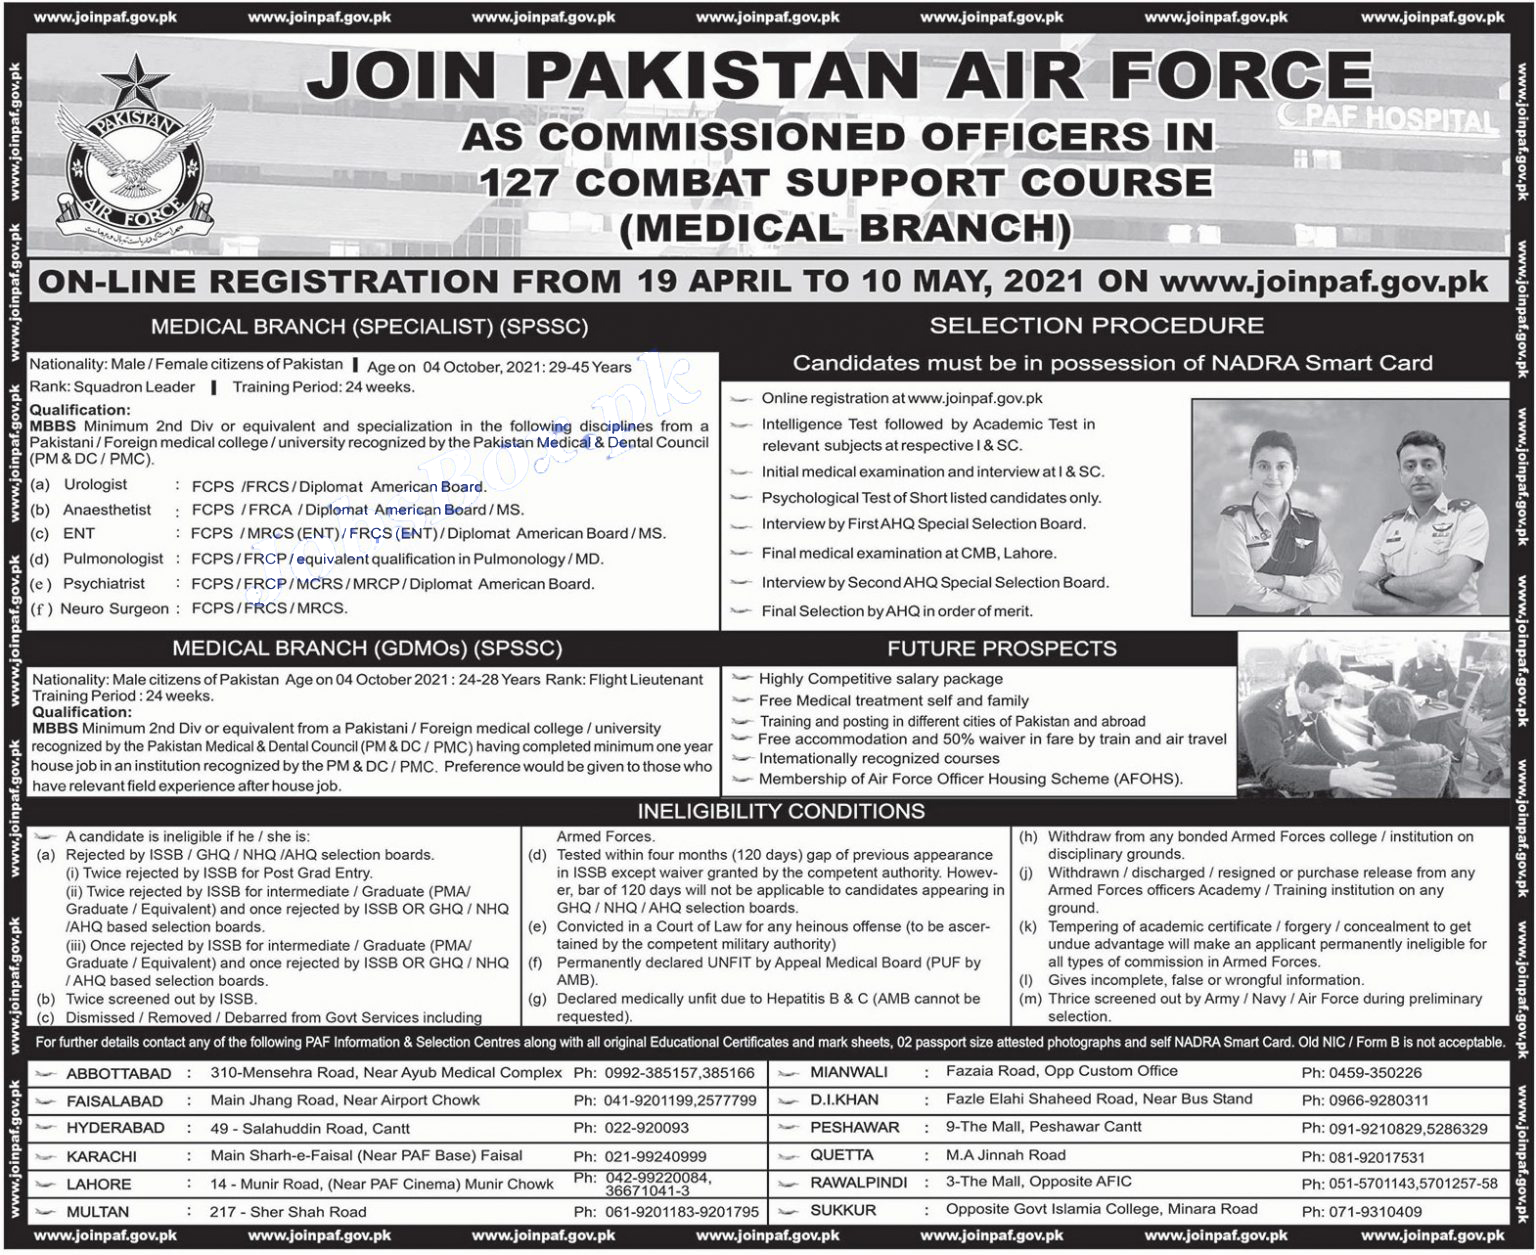 oin Pakistan Air Force PAF Jobs 2021 as Commissioned Officer